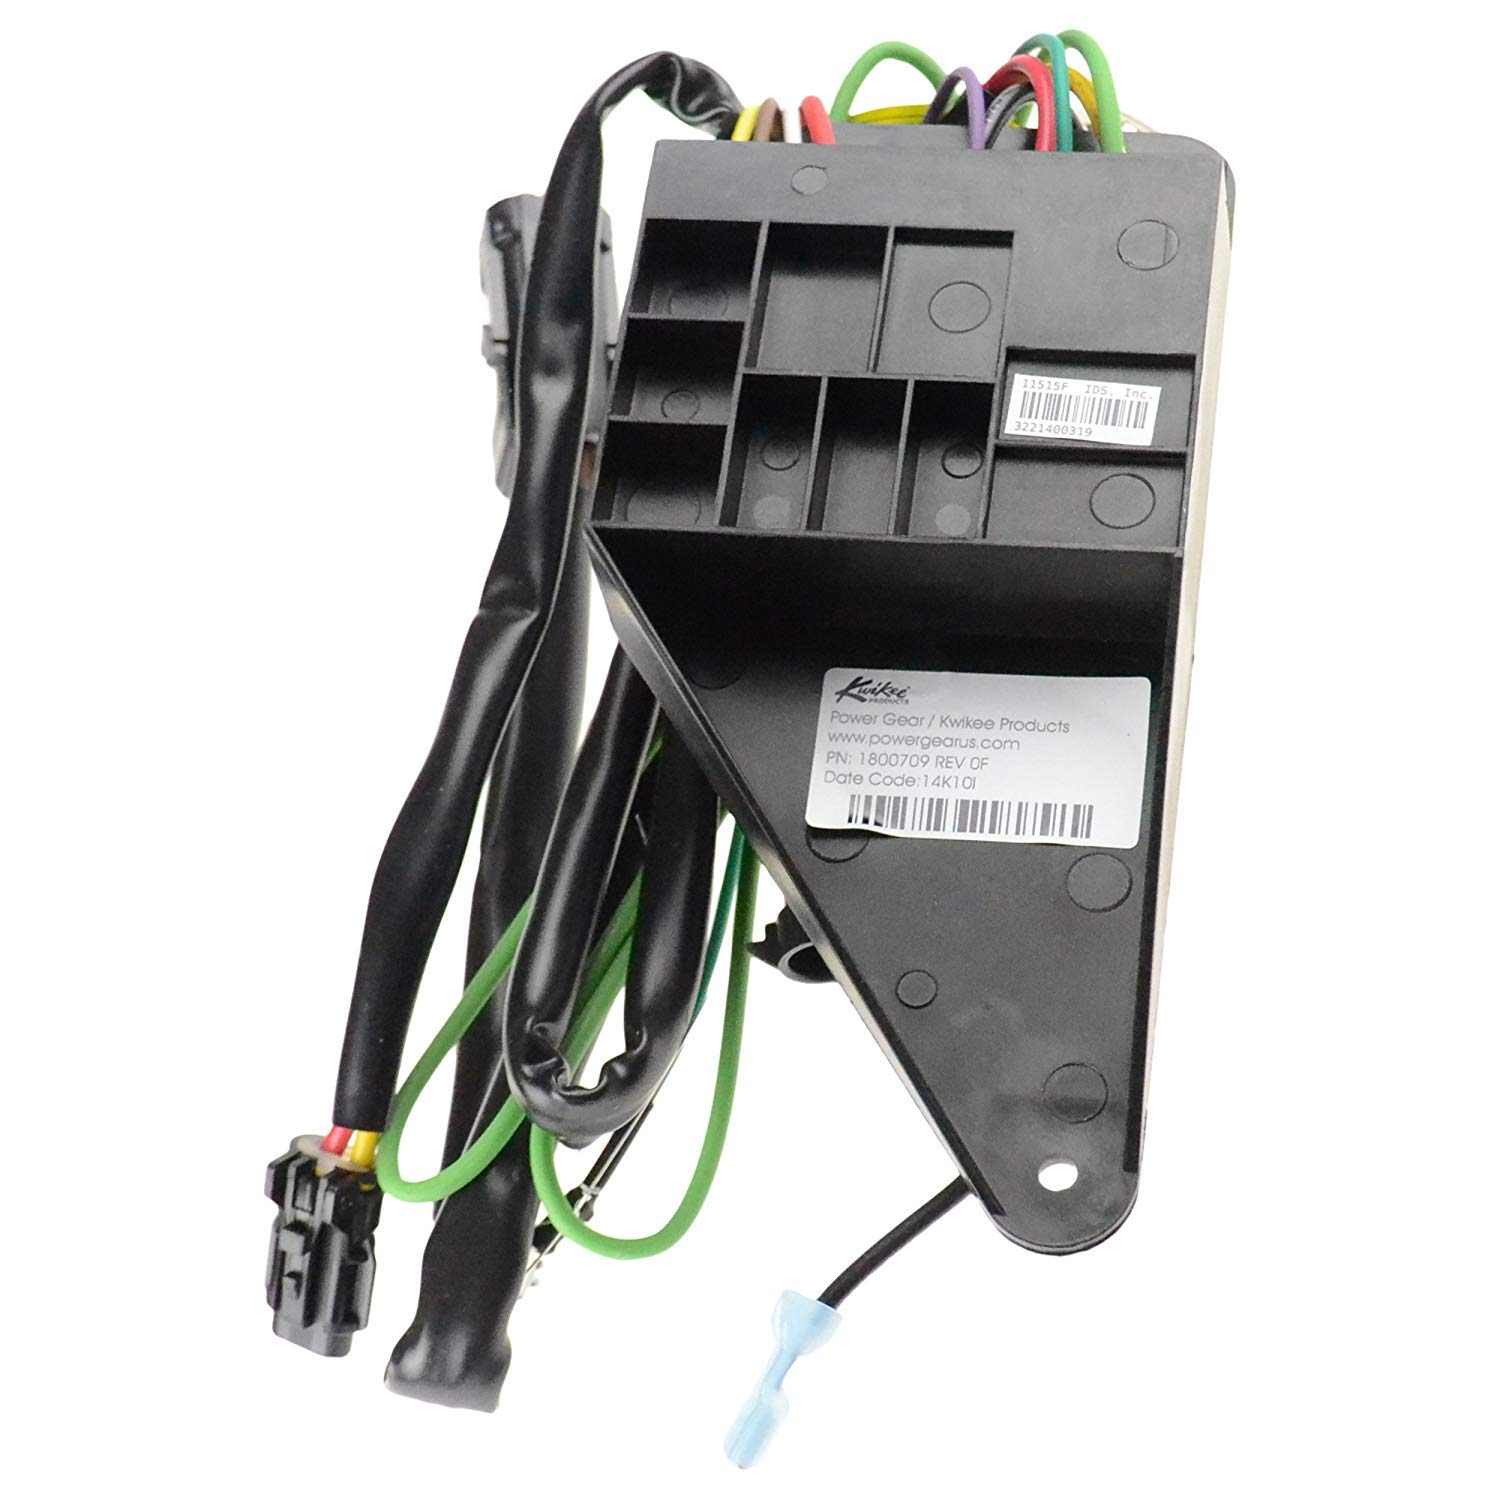 Kwikee 909510000 Classic Power Electric Step Control Unit with Override for IMGL/9510 by Kwikee